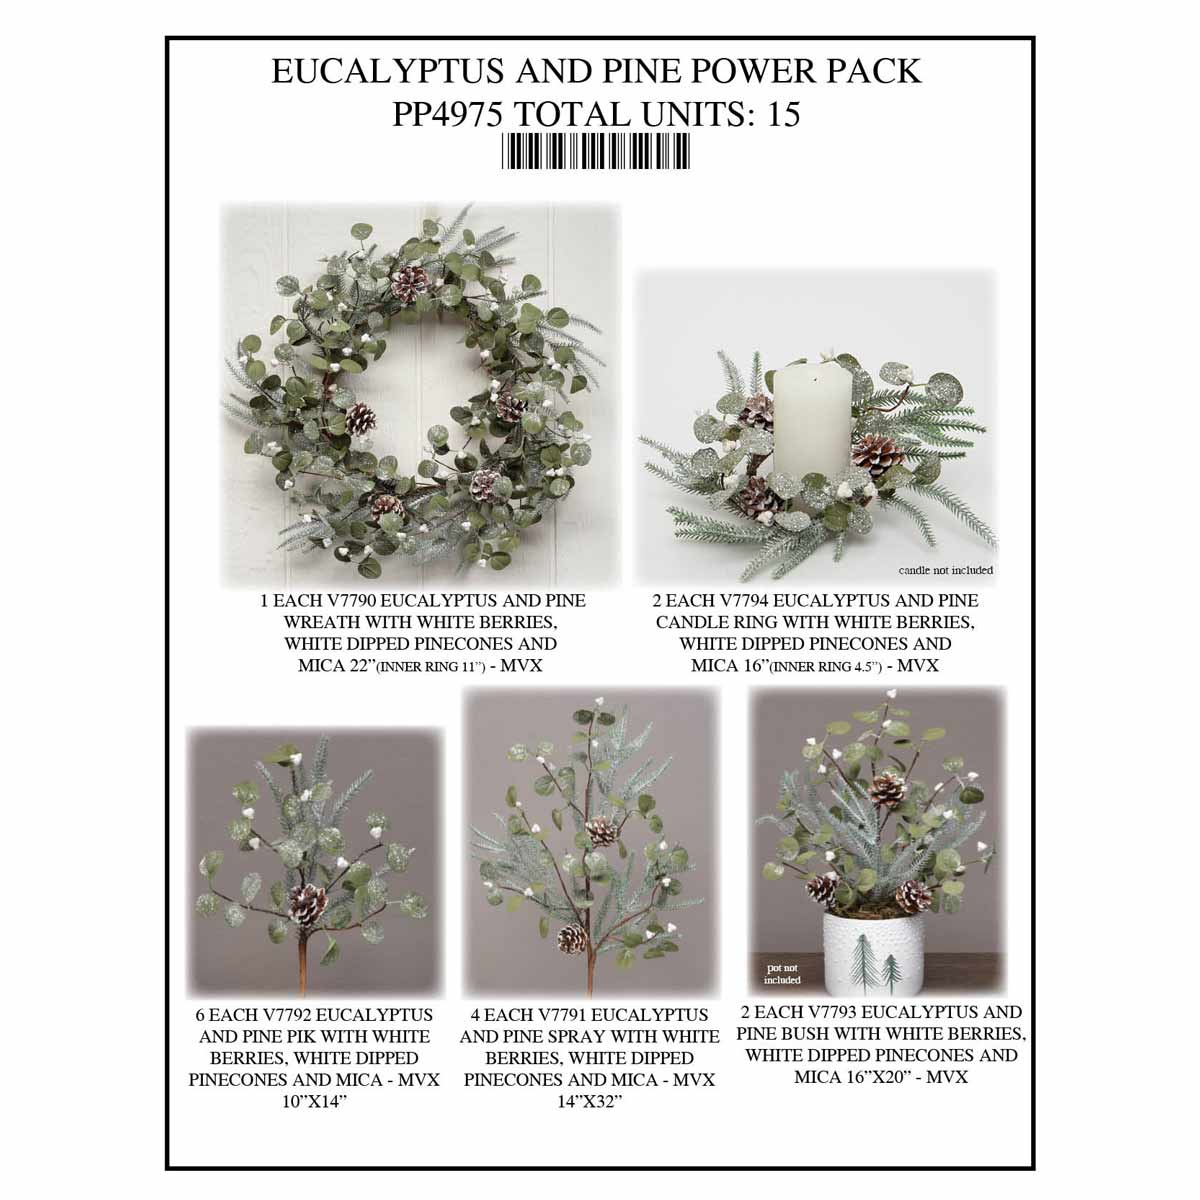 EUCALYPTUS PINE POWER PACK 15 UNITS